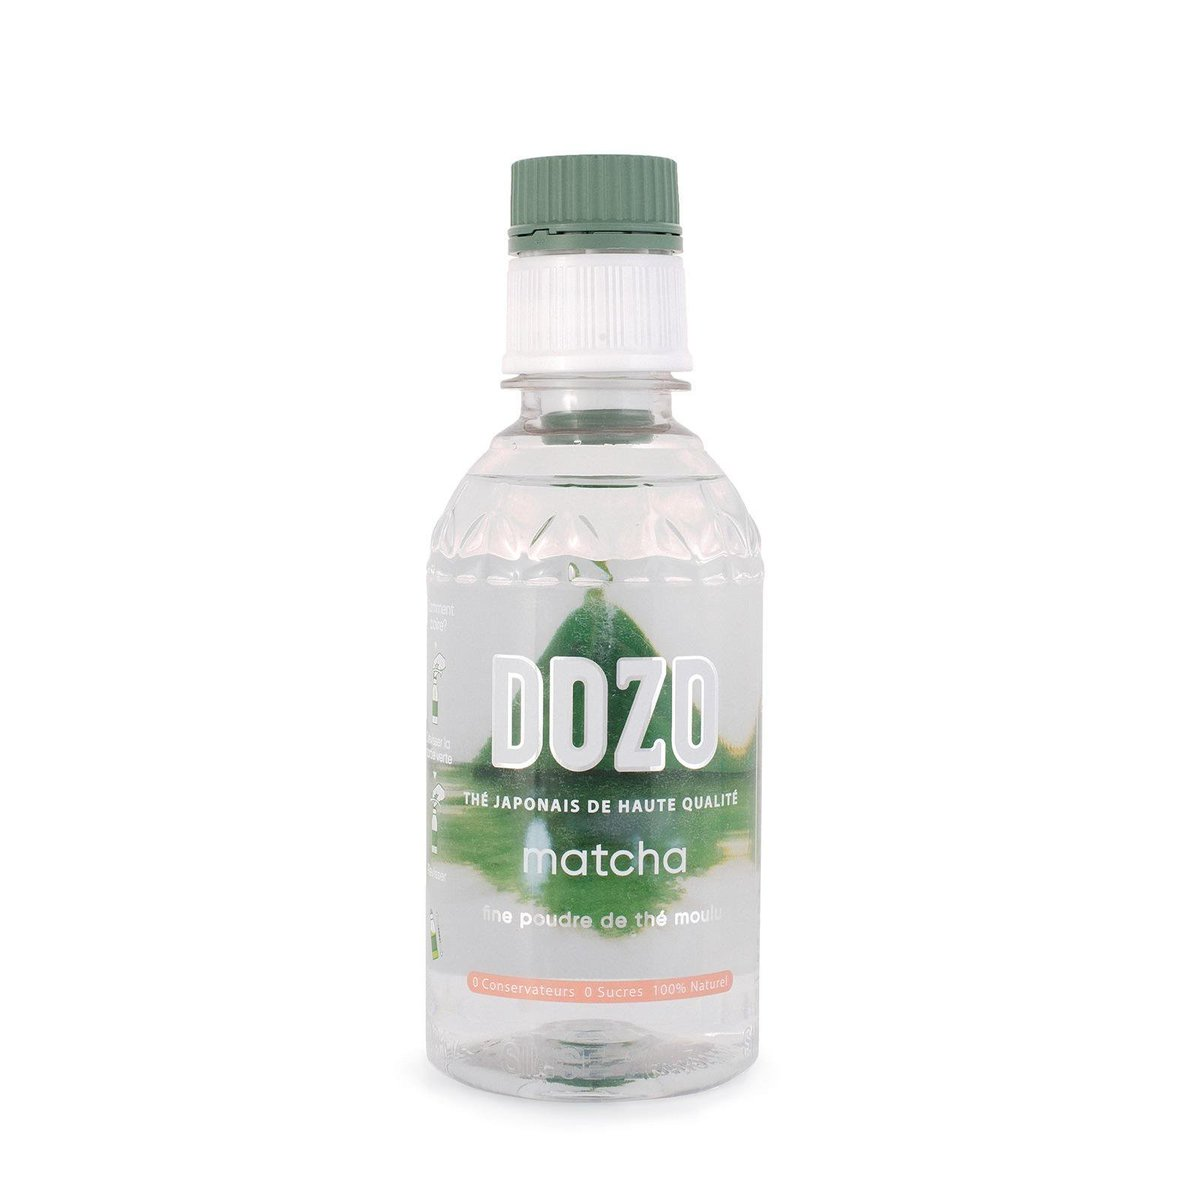 the matcha dozo